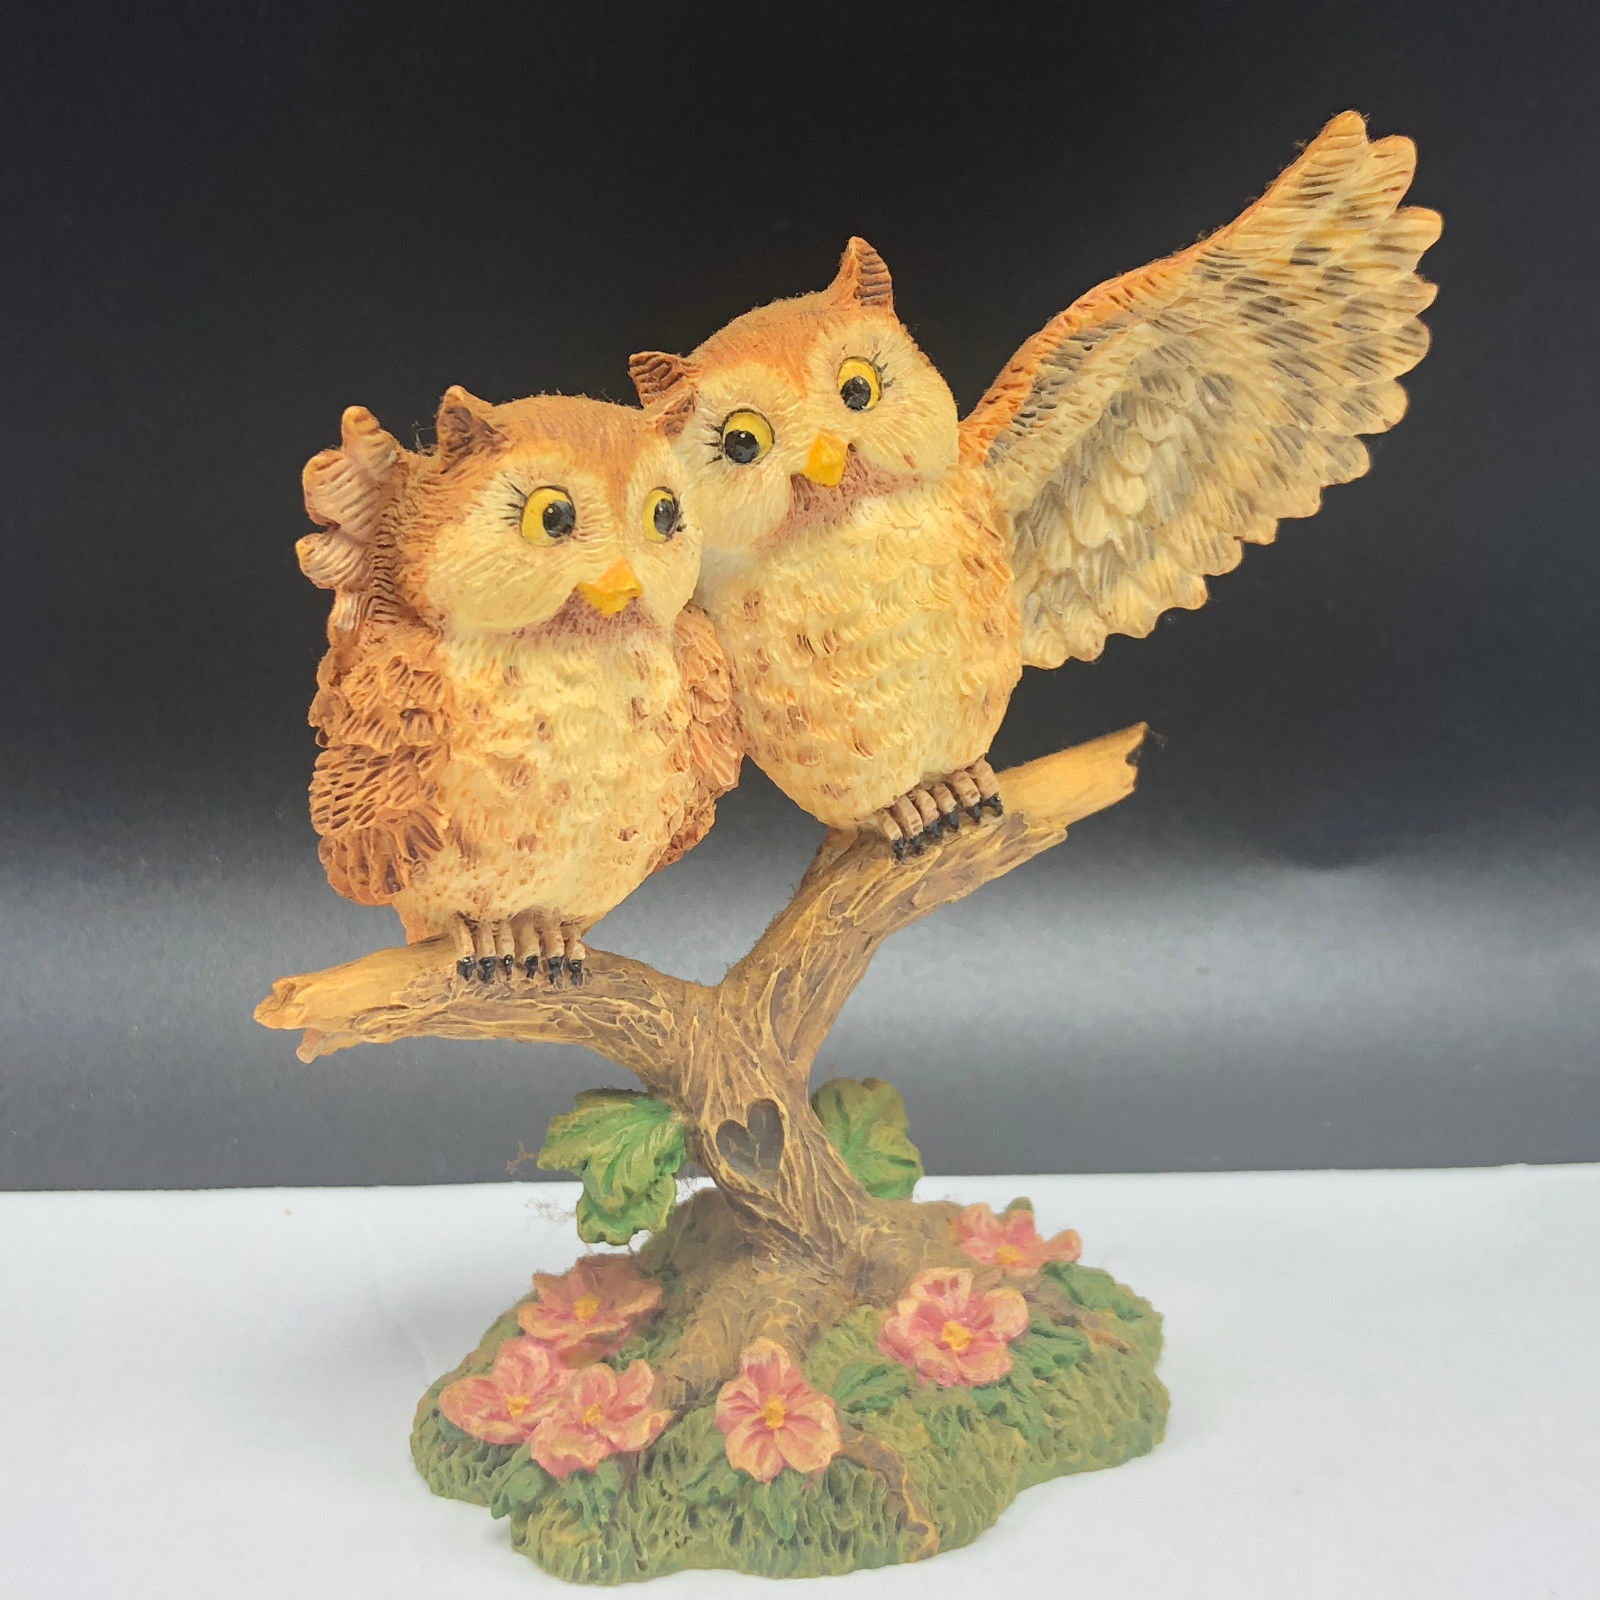 Primary image for VINTAGE OWL FIGURINE resin statue sculpture bird Hamilton lil whoots love owlway